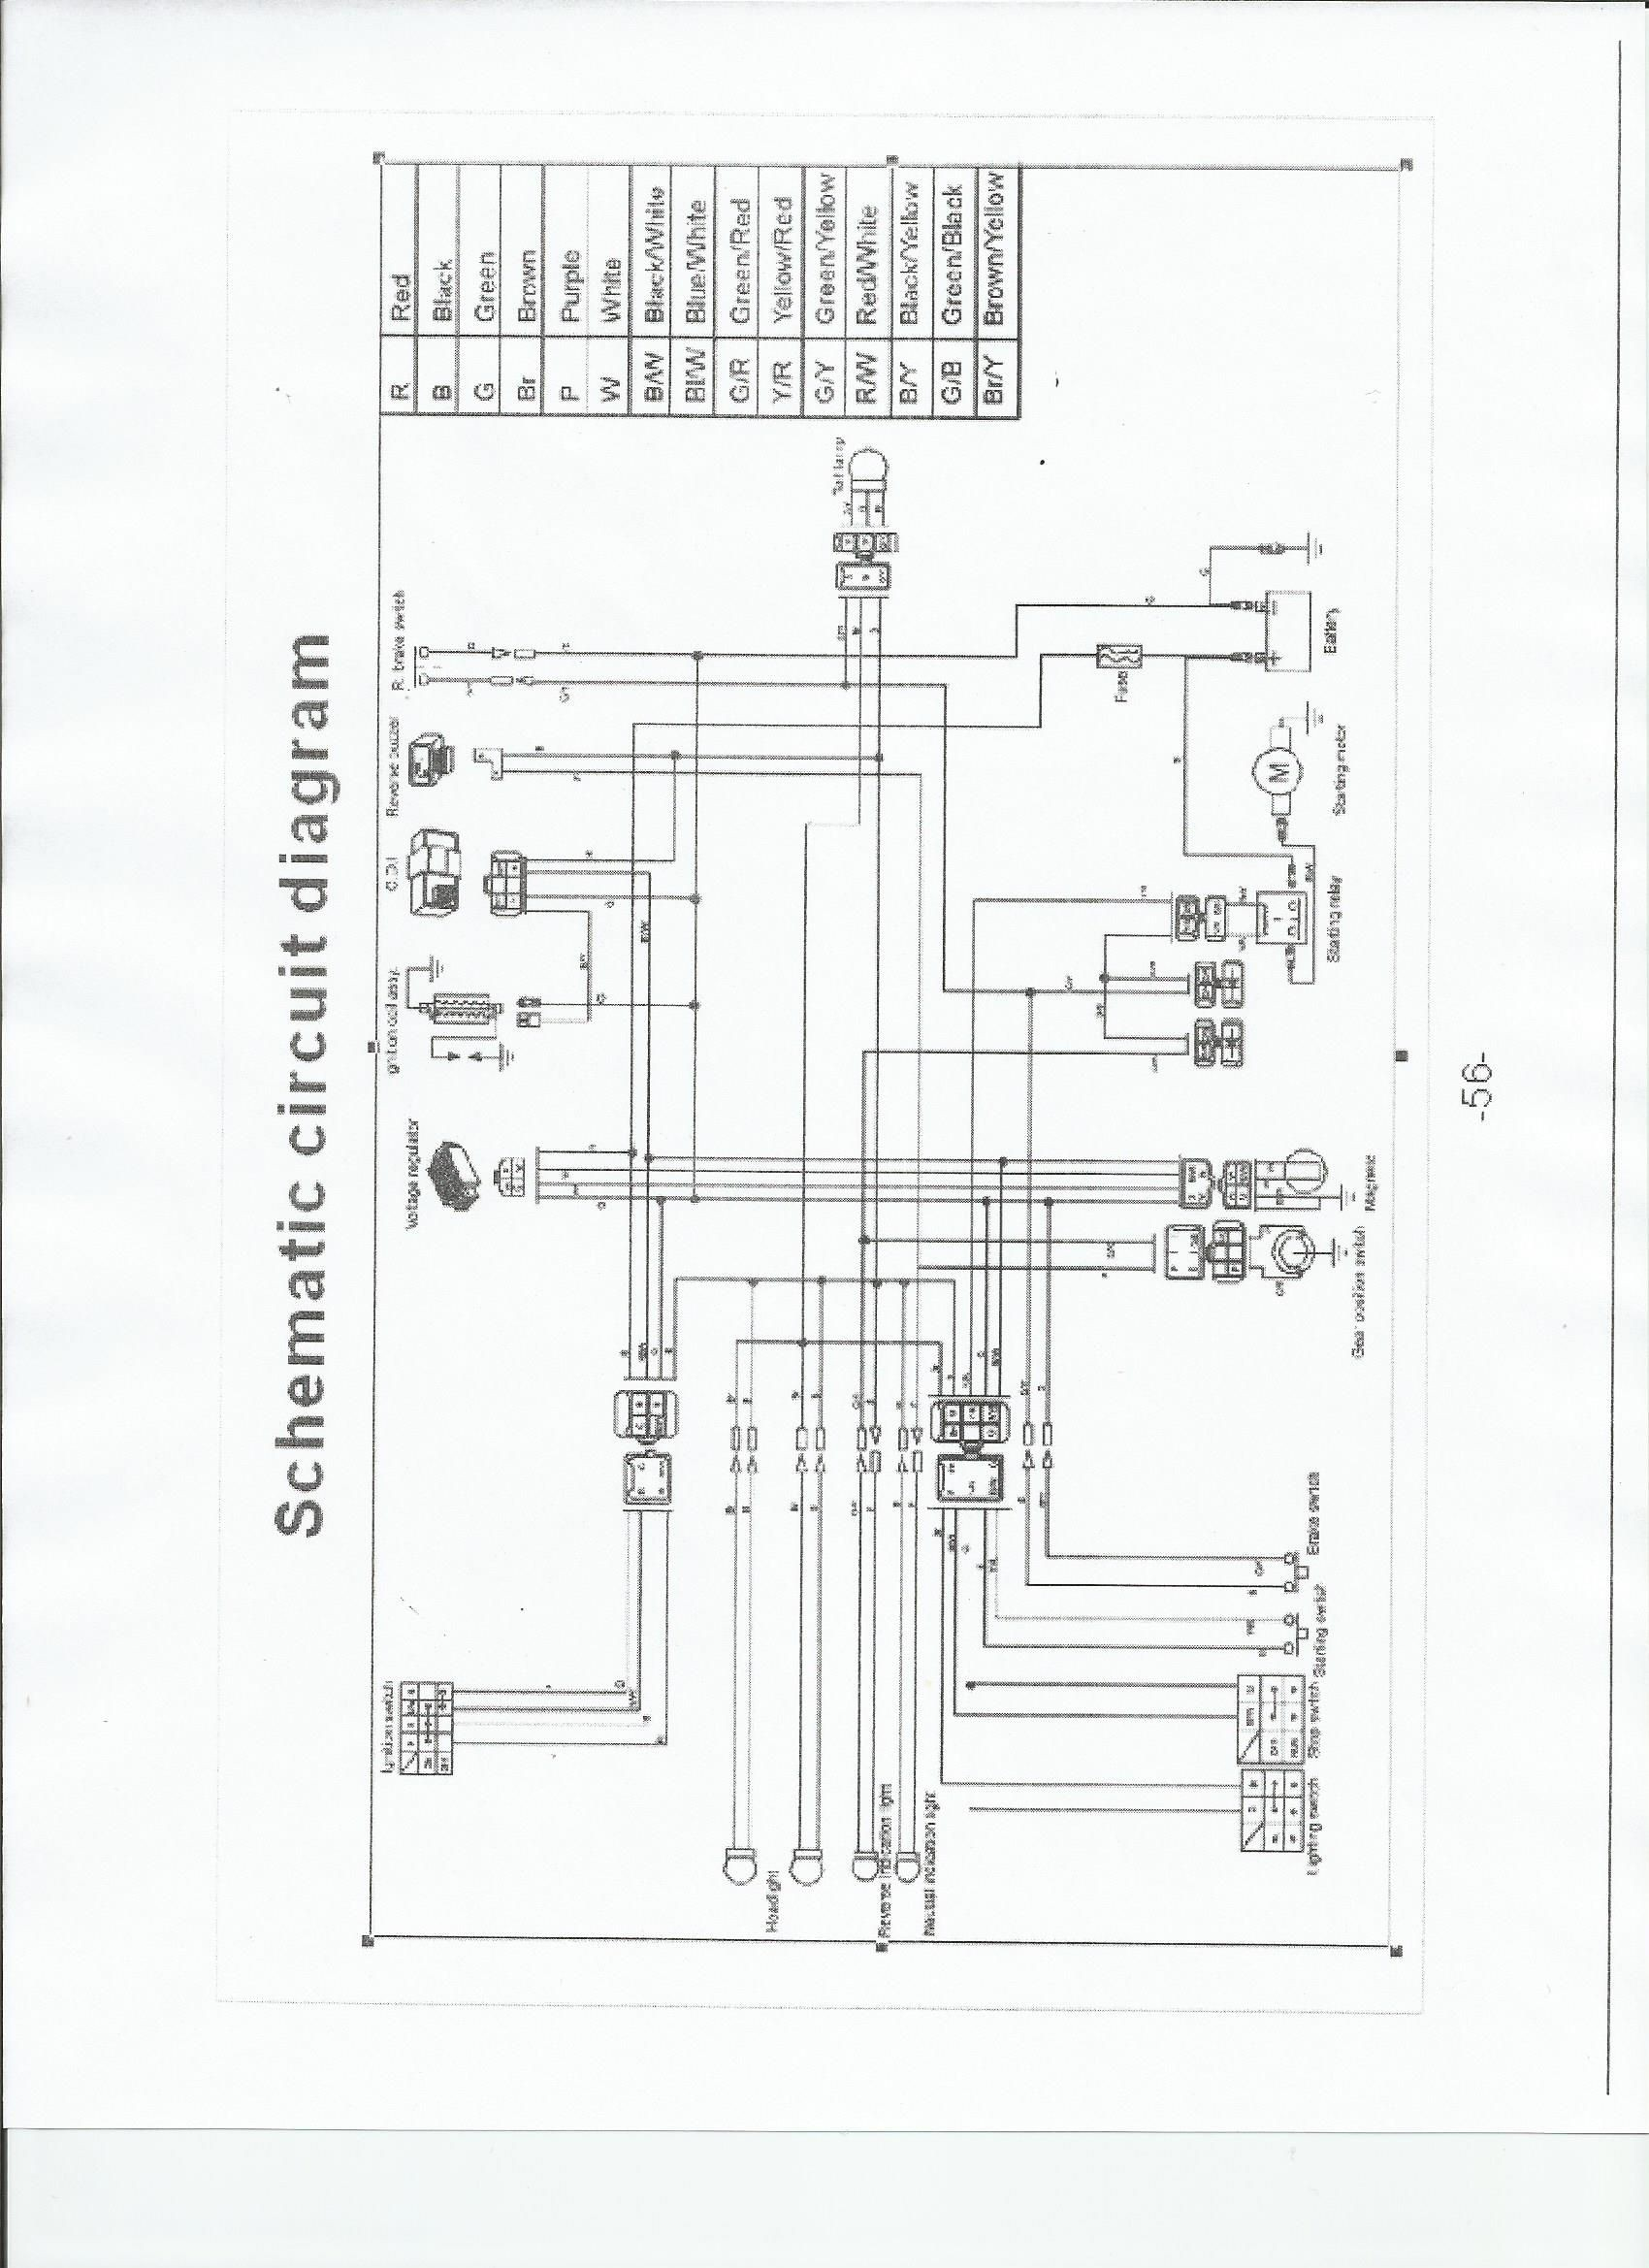 Wiring Diagram for A Chinese 110 atv Ee 8176] Wiring Diagram Hensim atv Wiring Diagram Tao Of Wiring Diagram for A Chinese 110 atv